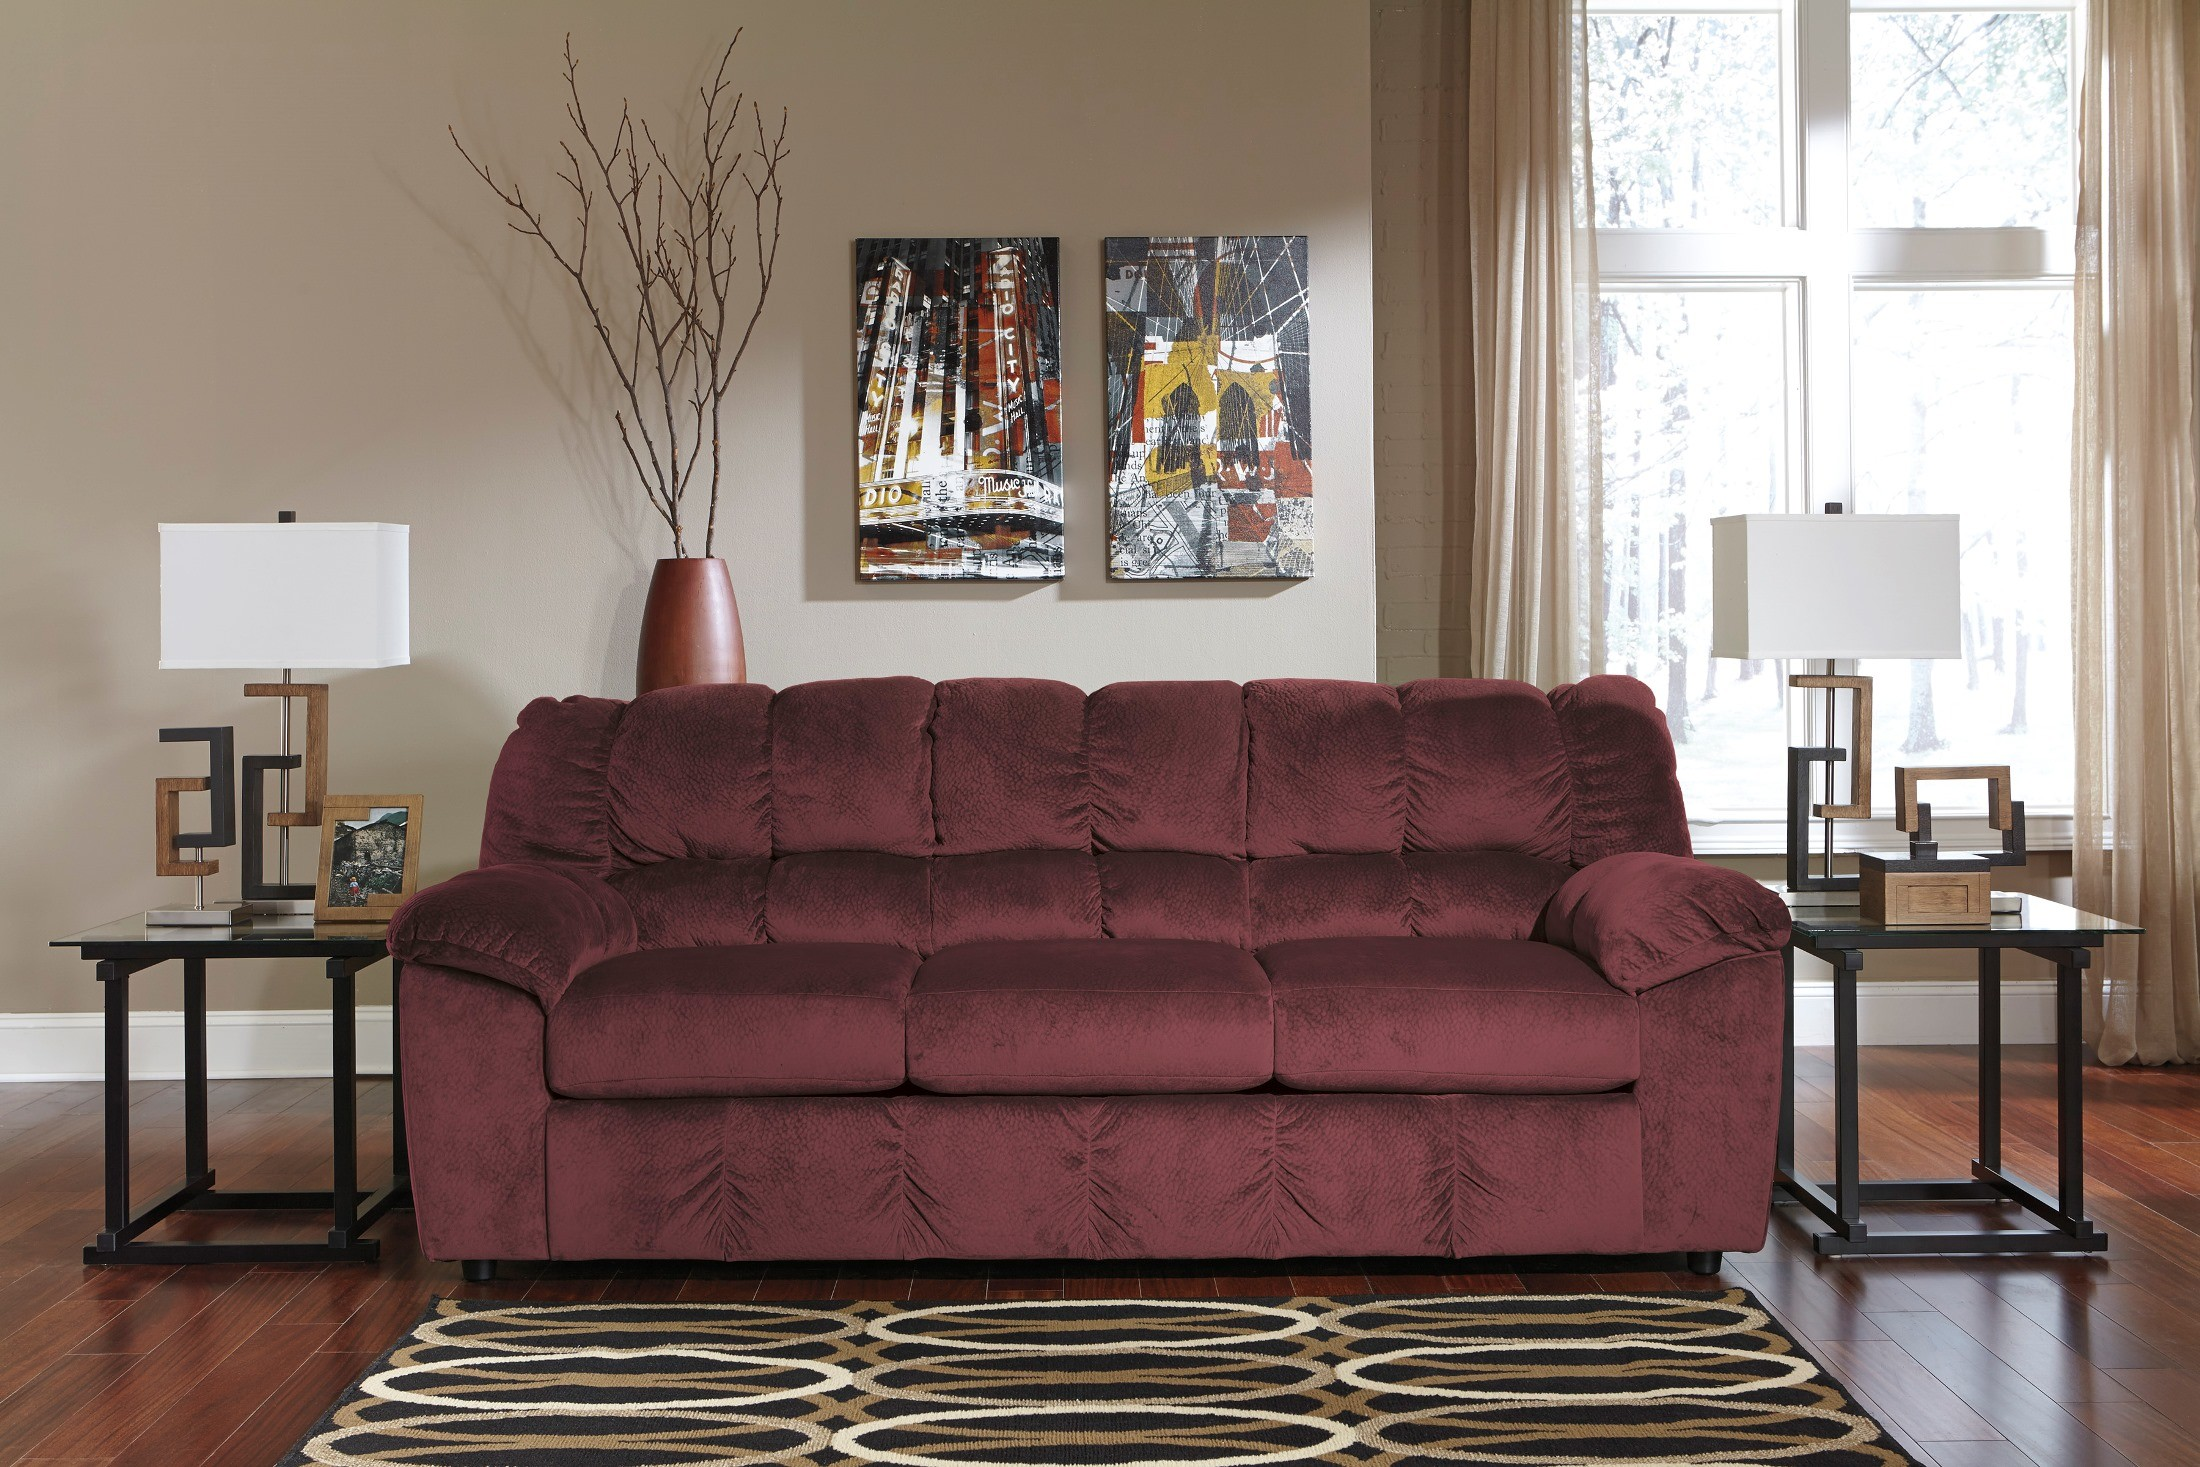 rustic julson burgundy living room set | Julson Burgundy Stationary Sofa from Ashley (2660238 ...